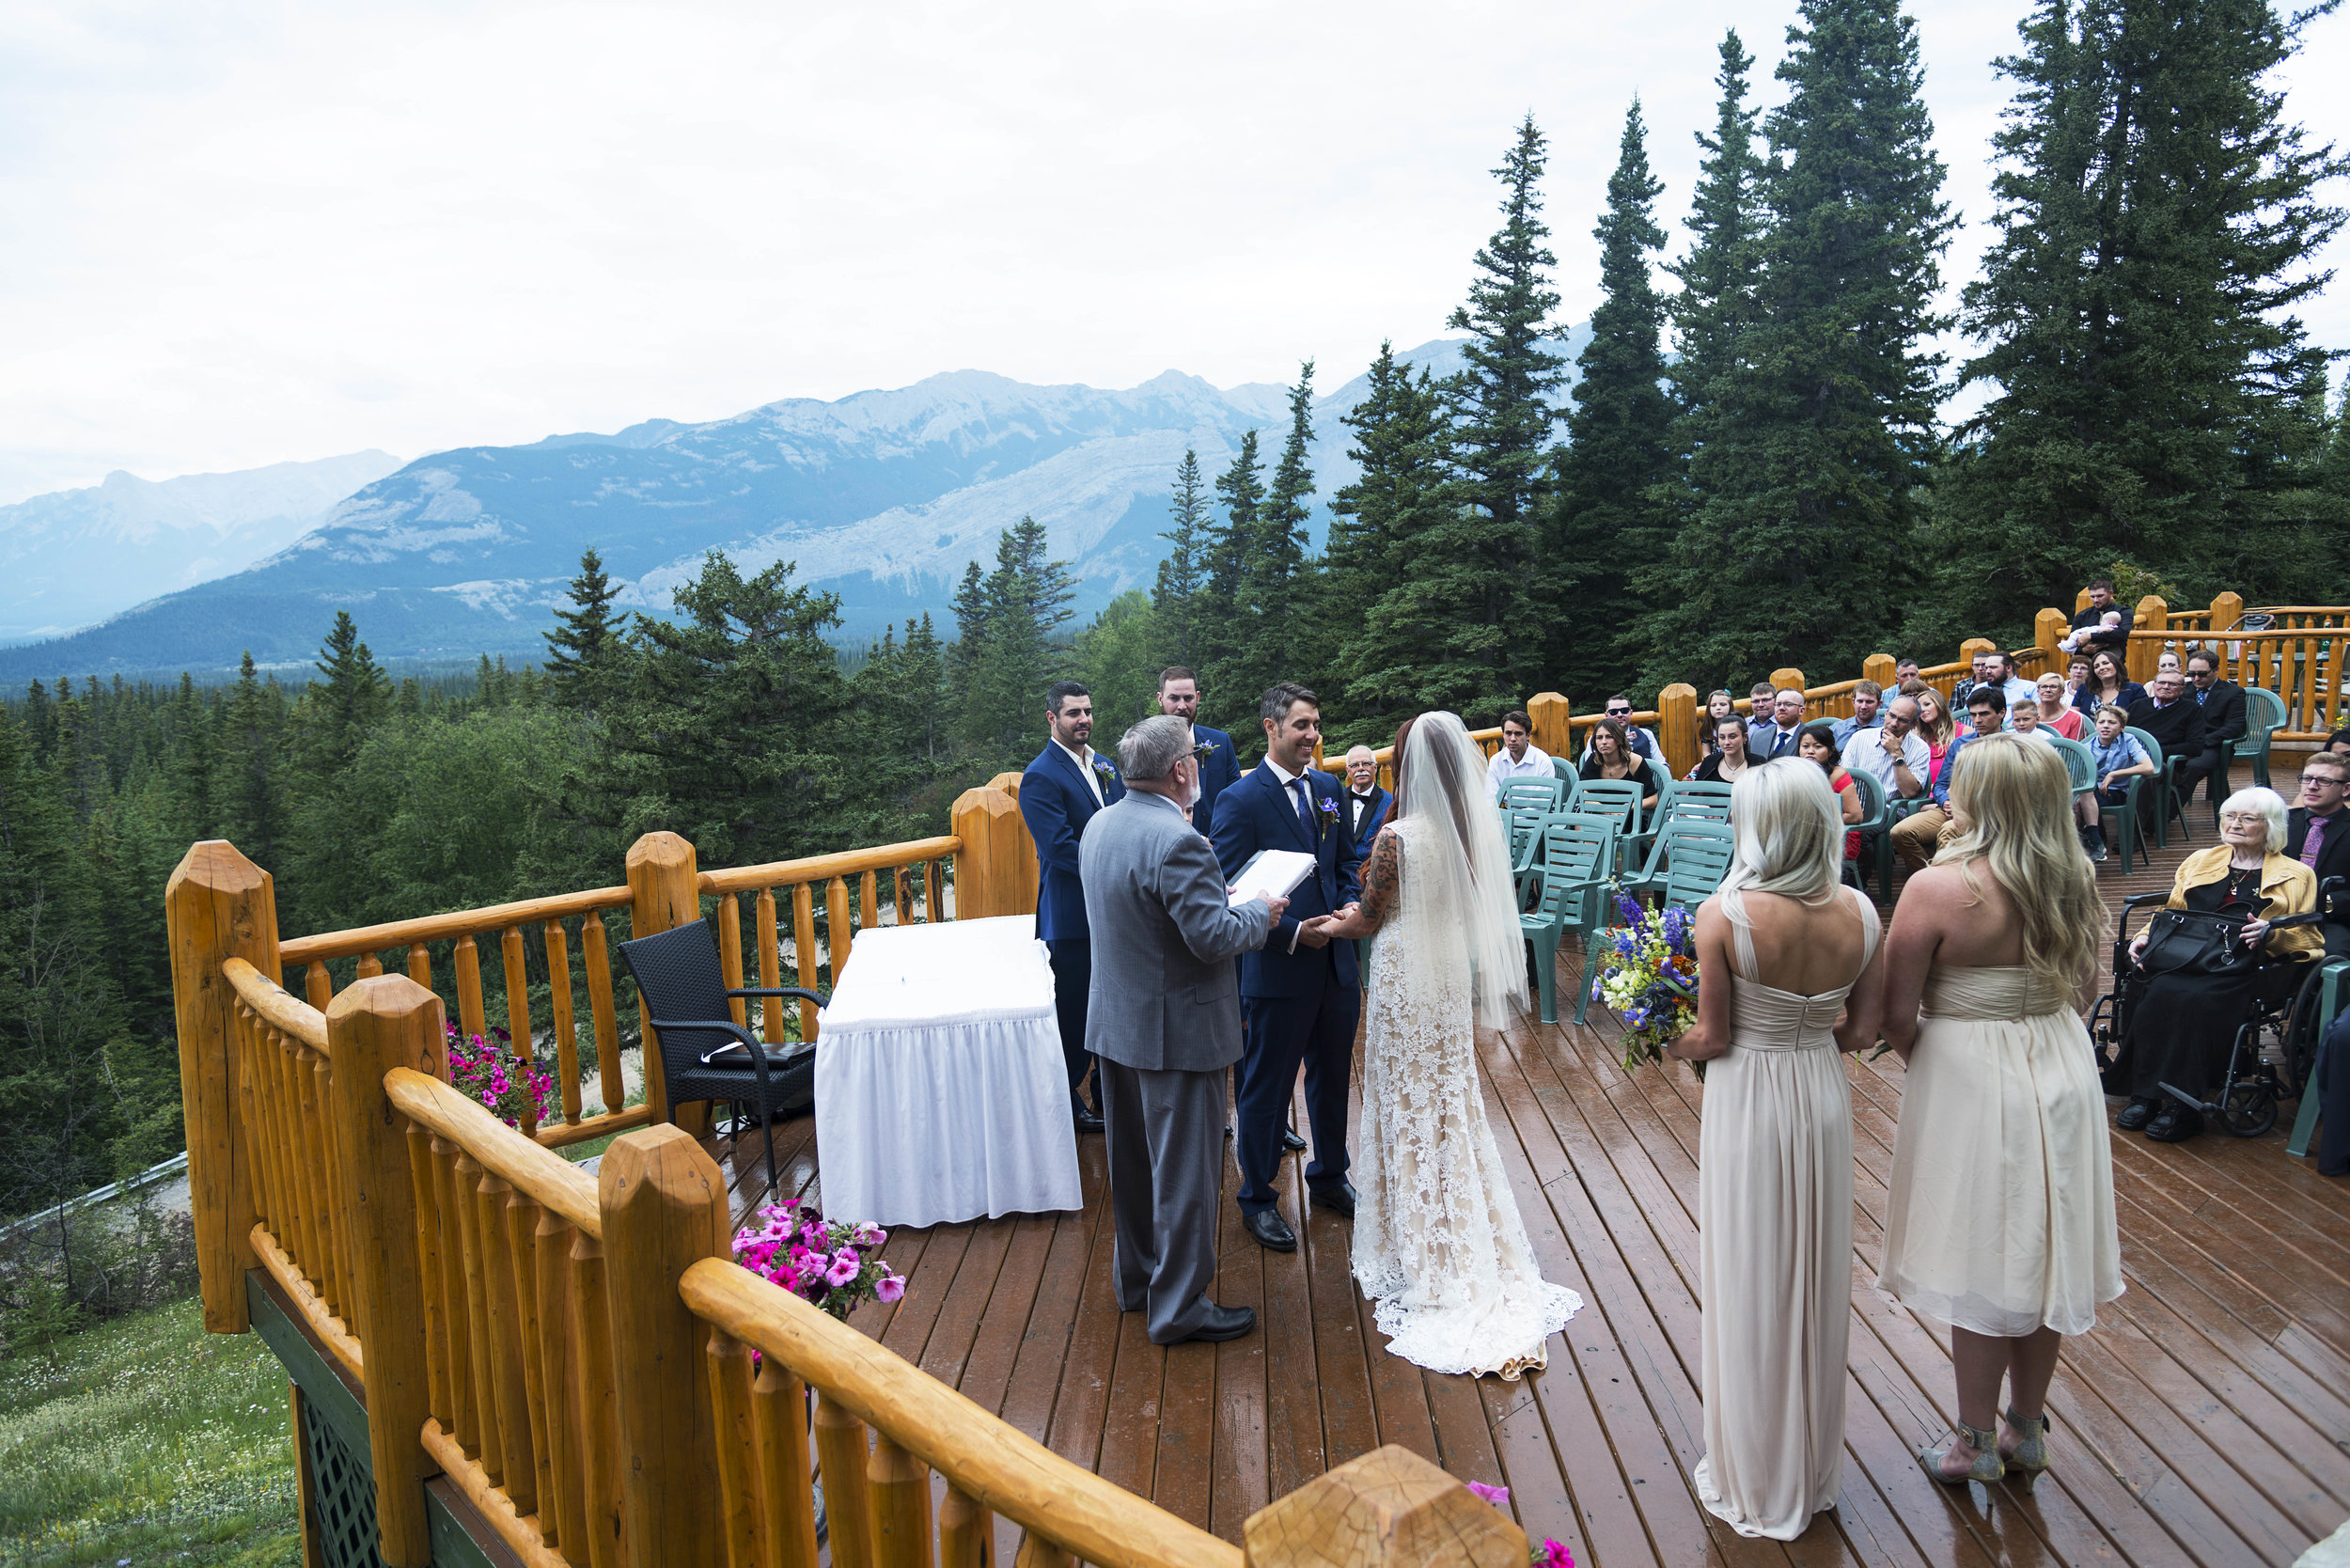 Jasper Weddings - Getting Married in the National Parks? We are fully licensed to operate in Banff and Jasper, and would love to capture your day in the rockies!